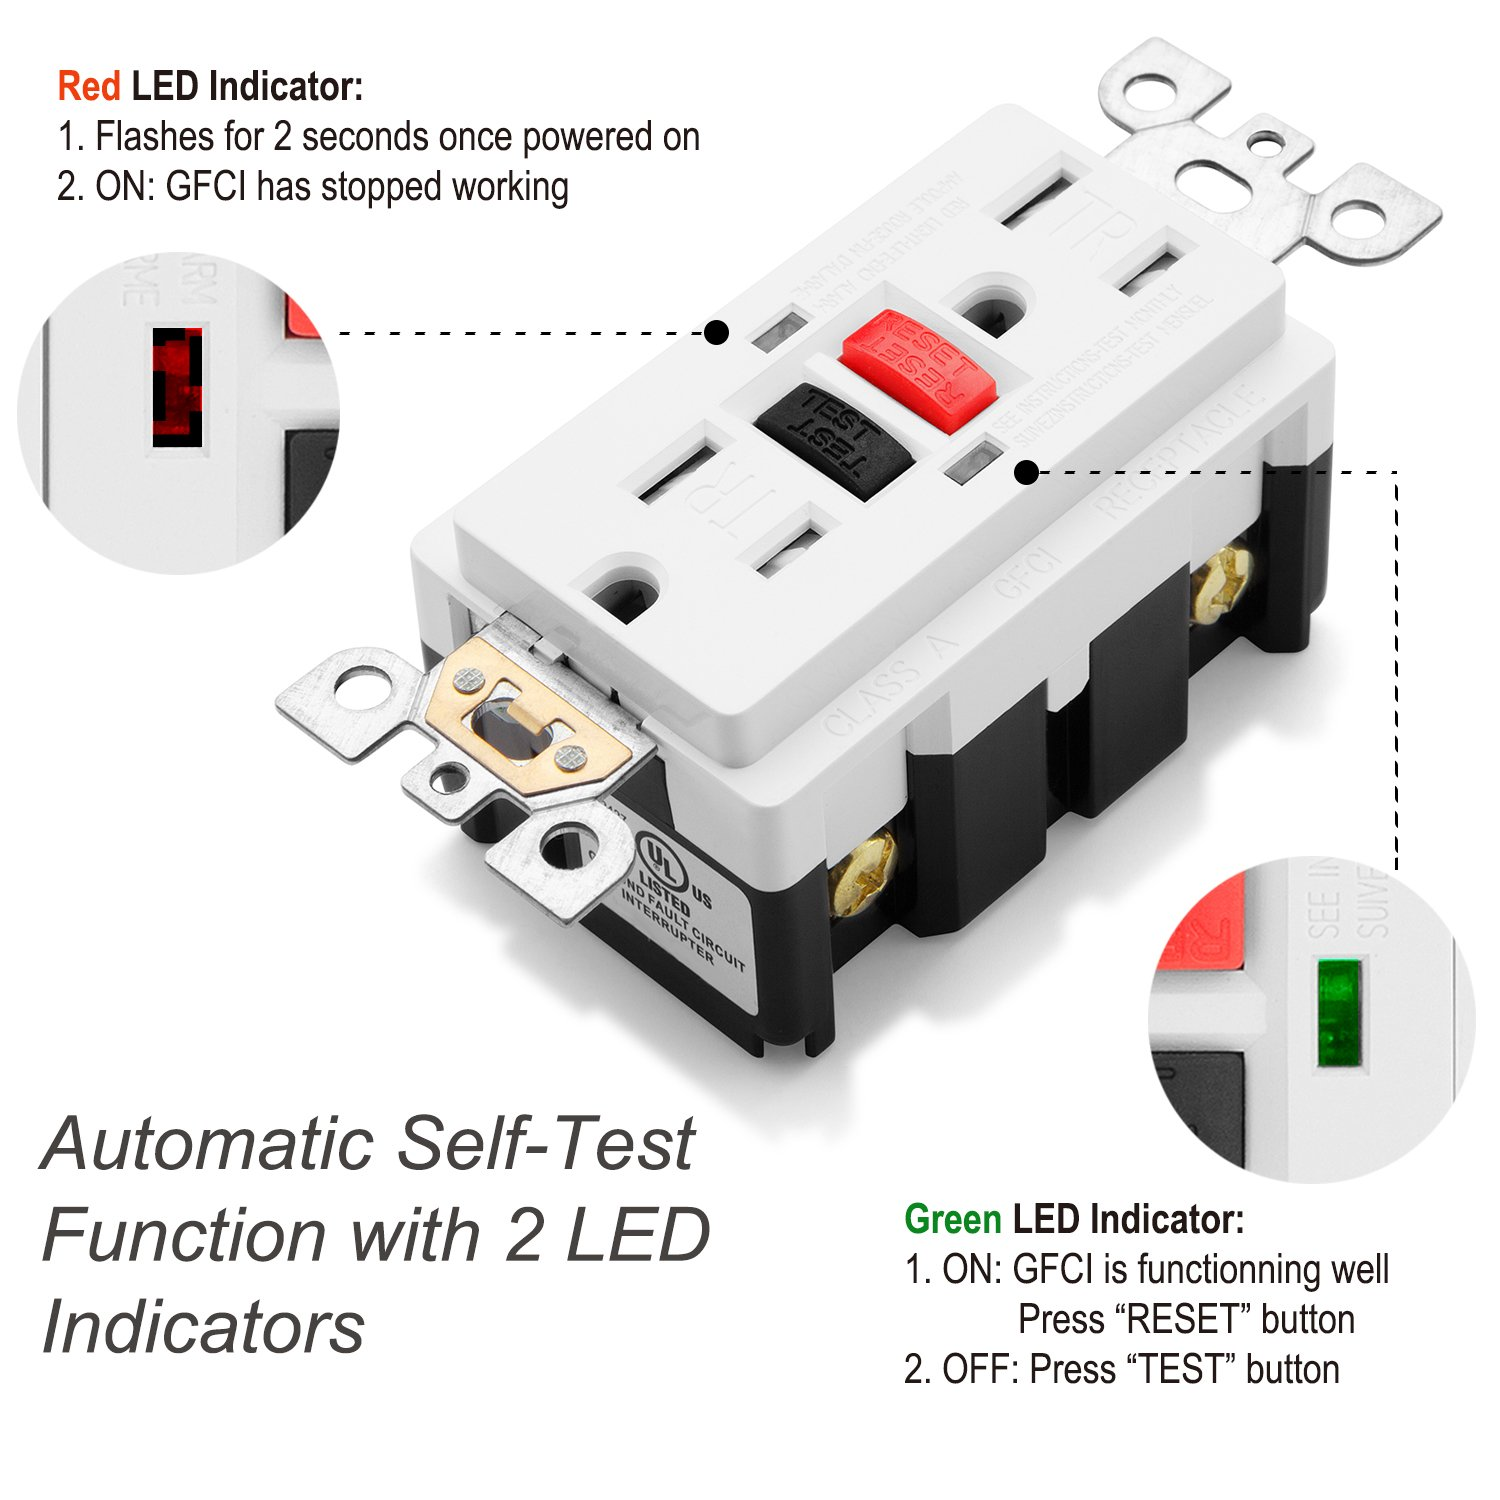 Bestten 15a Self Test Tamper Resistant Gfci Receptacle Outlet With 2 15 Amp Circuit Guard White Hd Led Indicators Ground Fault Interrupter 125v 1875w Wall Plates